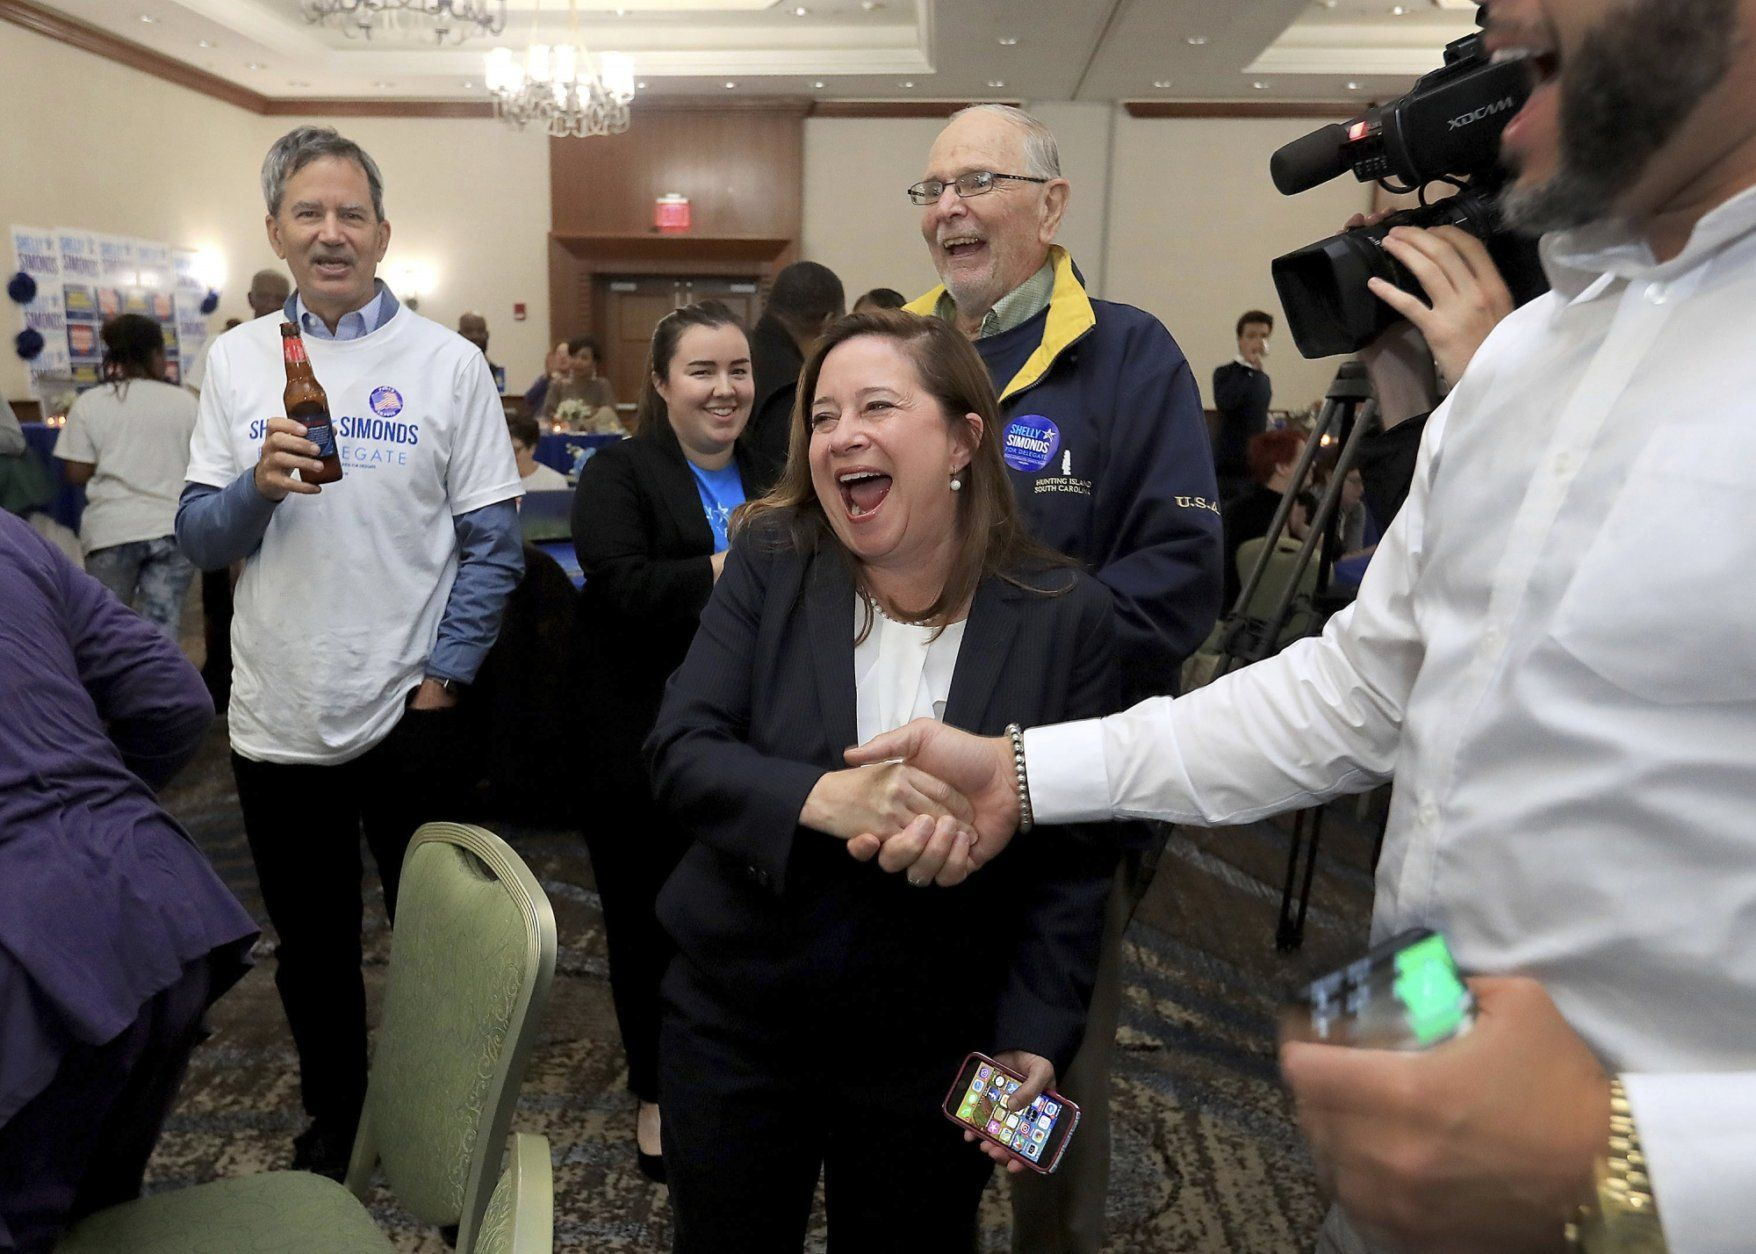 Candidate for the 94th District, Shelly Simonds, celebrates with supporters as election results begin to come in Tuesday, Nov. 5, 2019, at the Marriott in Newport News, Va. (Rob Ostermaier/The Virginian-Pilot via AP)